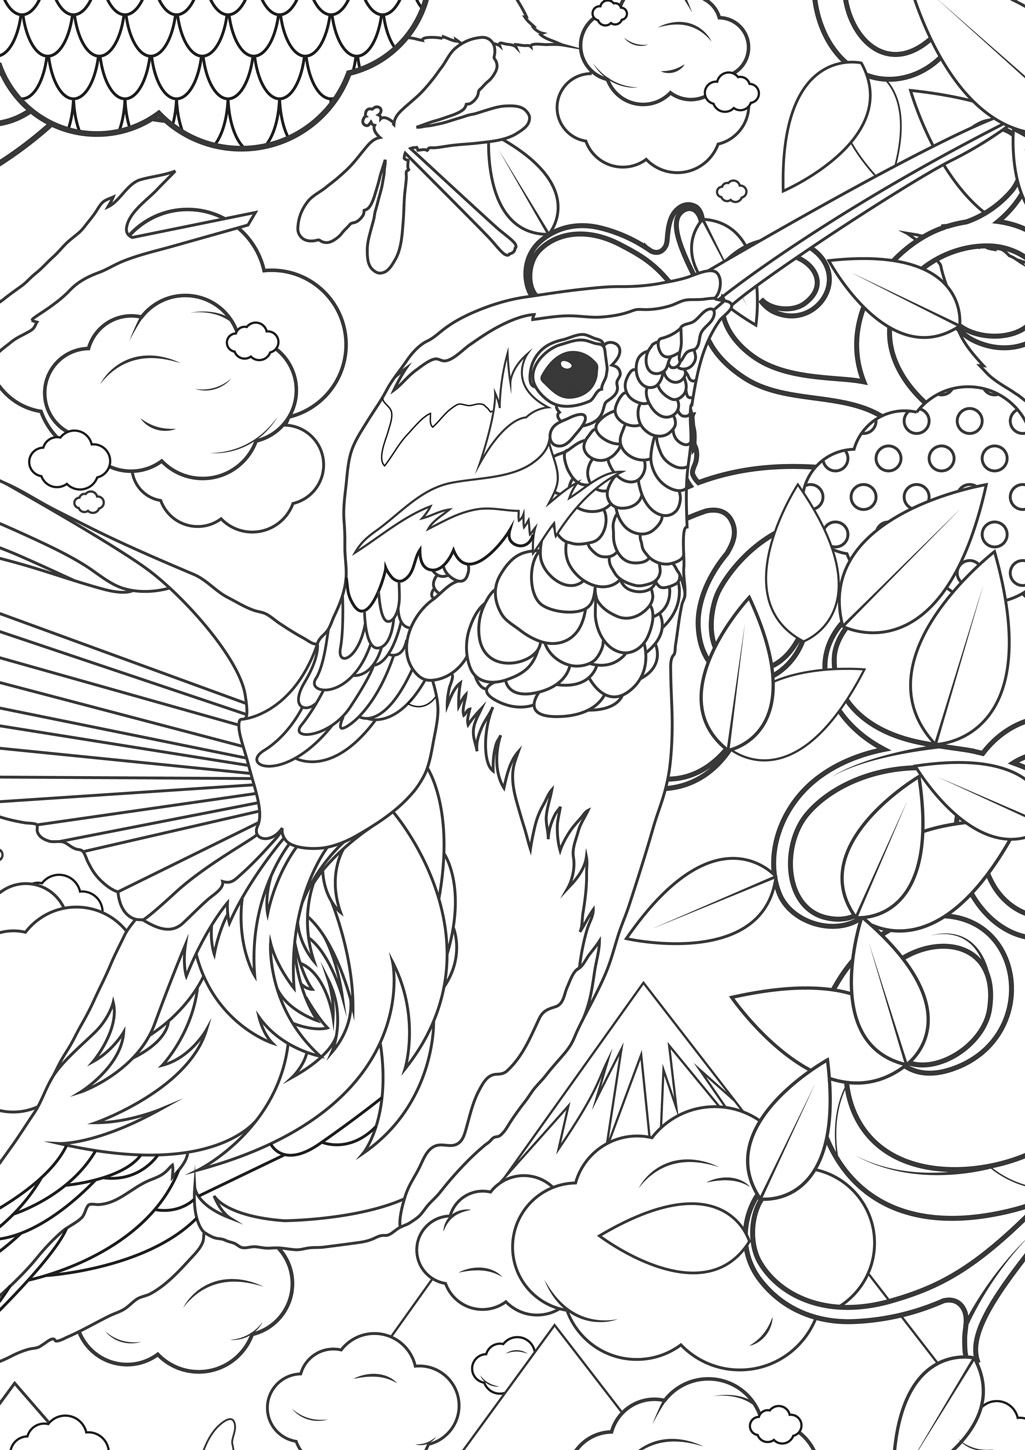 Adult Beauty Advanced Coloring Pages For Older Kids Images cute older kid coloring pages free printable for kids 1000 images about humming birds art on gallery images